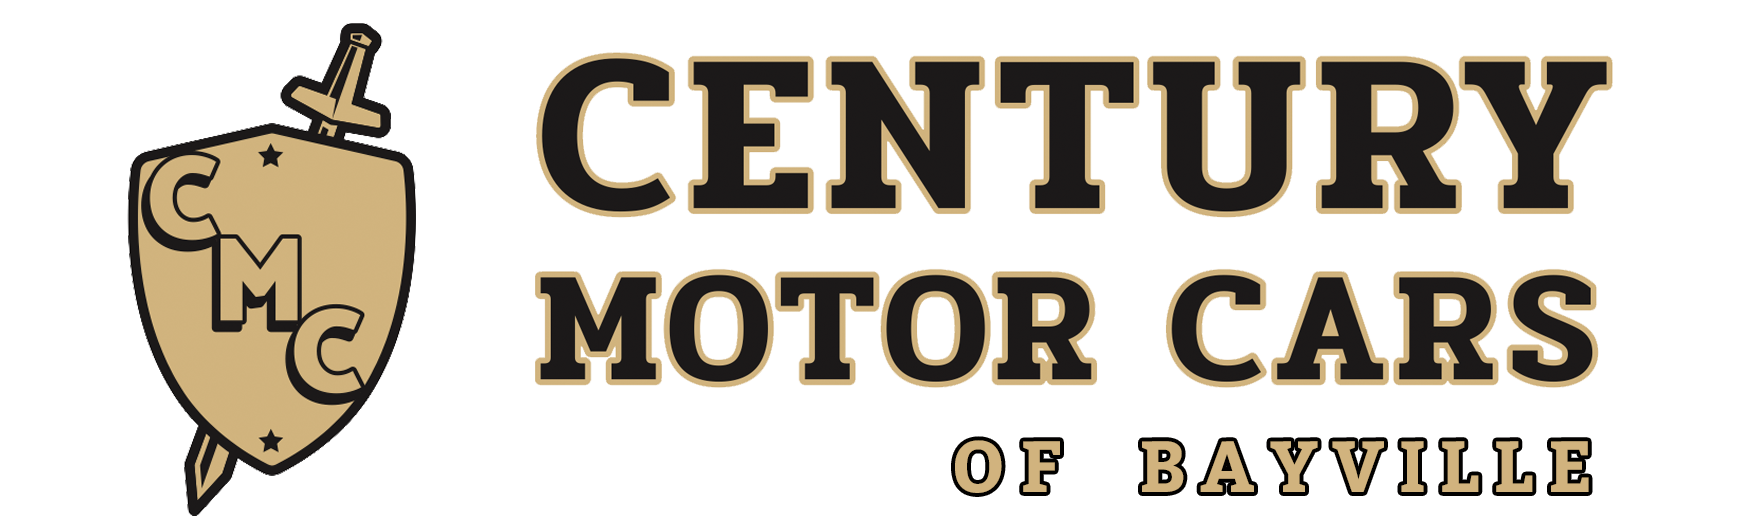 Century Motor Cars of Bayville Logo